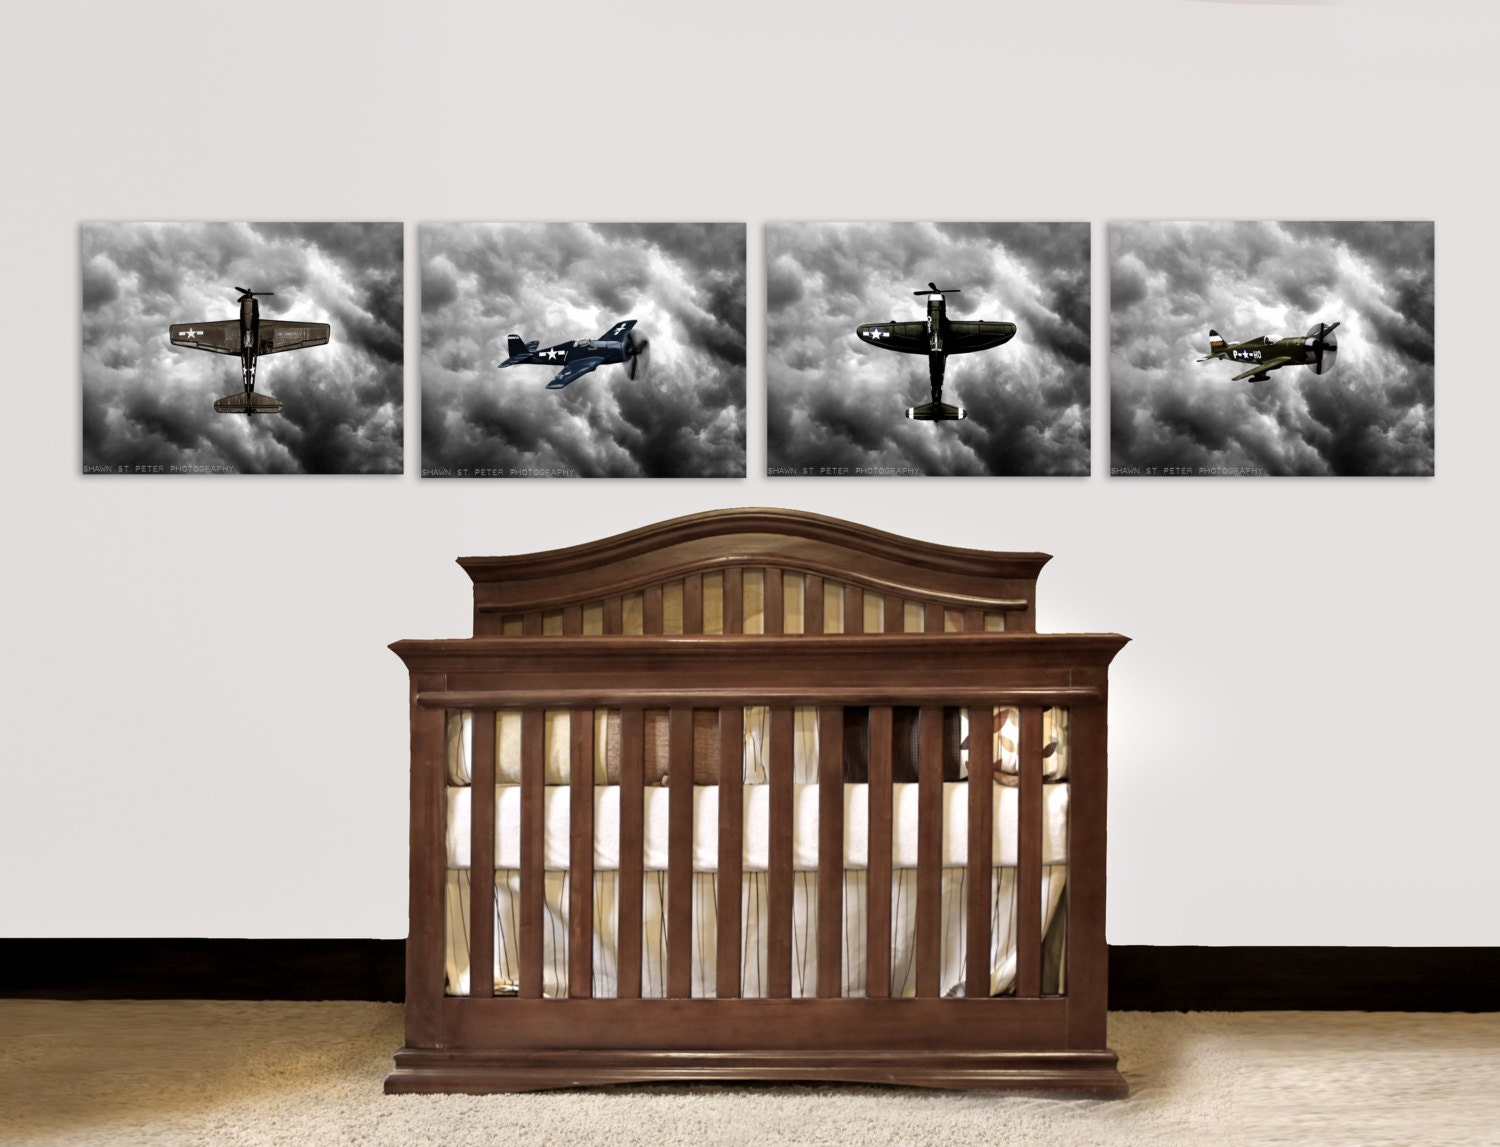 nursery decor vintage airplanes baby room ideas by